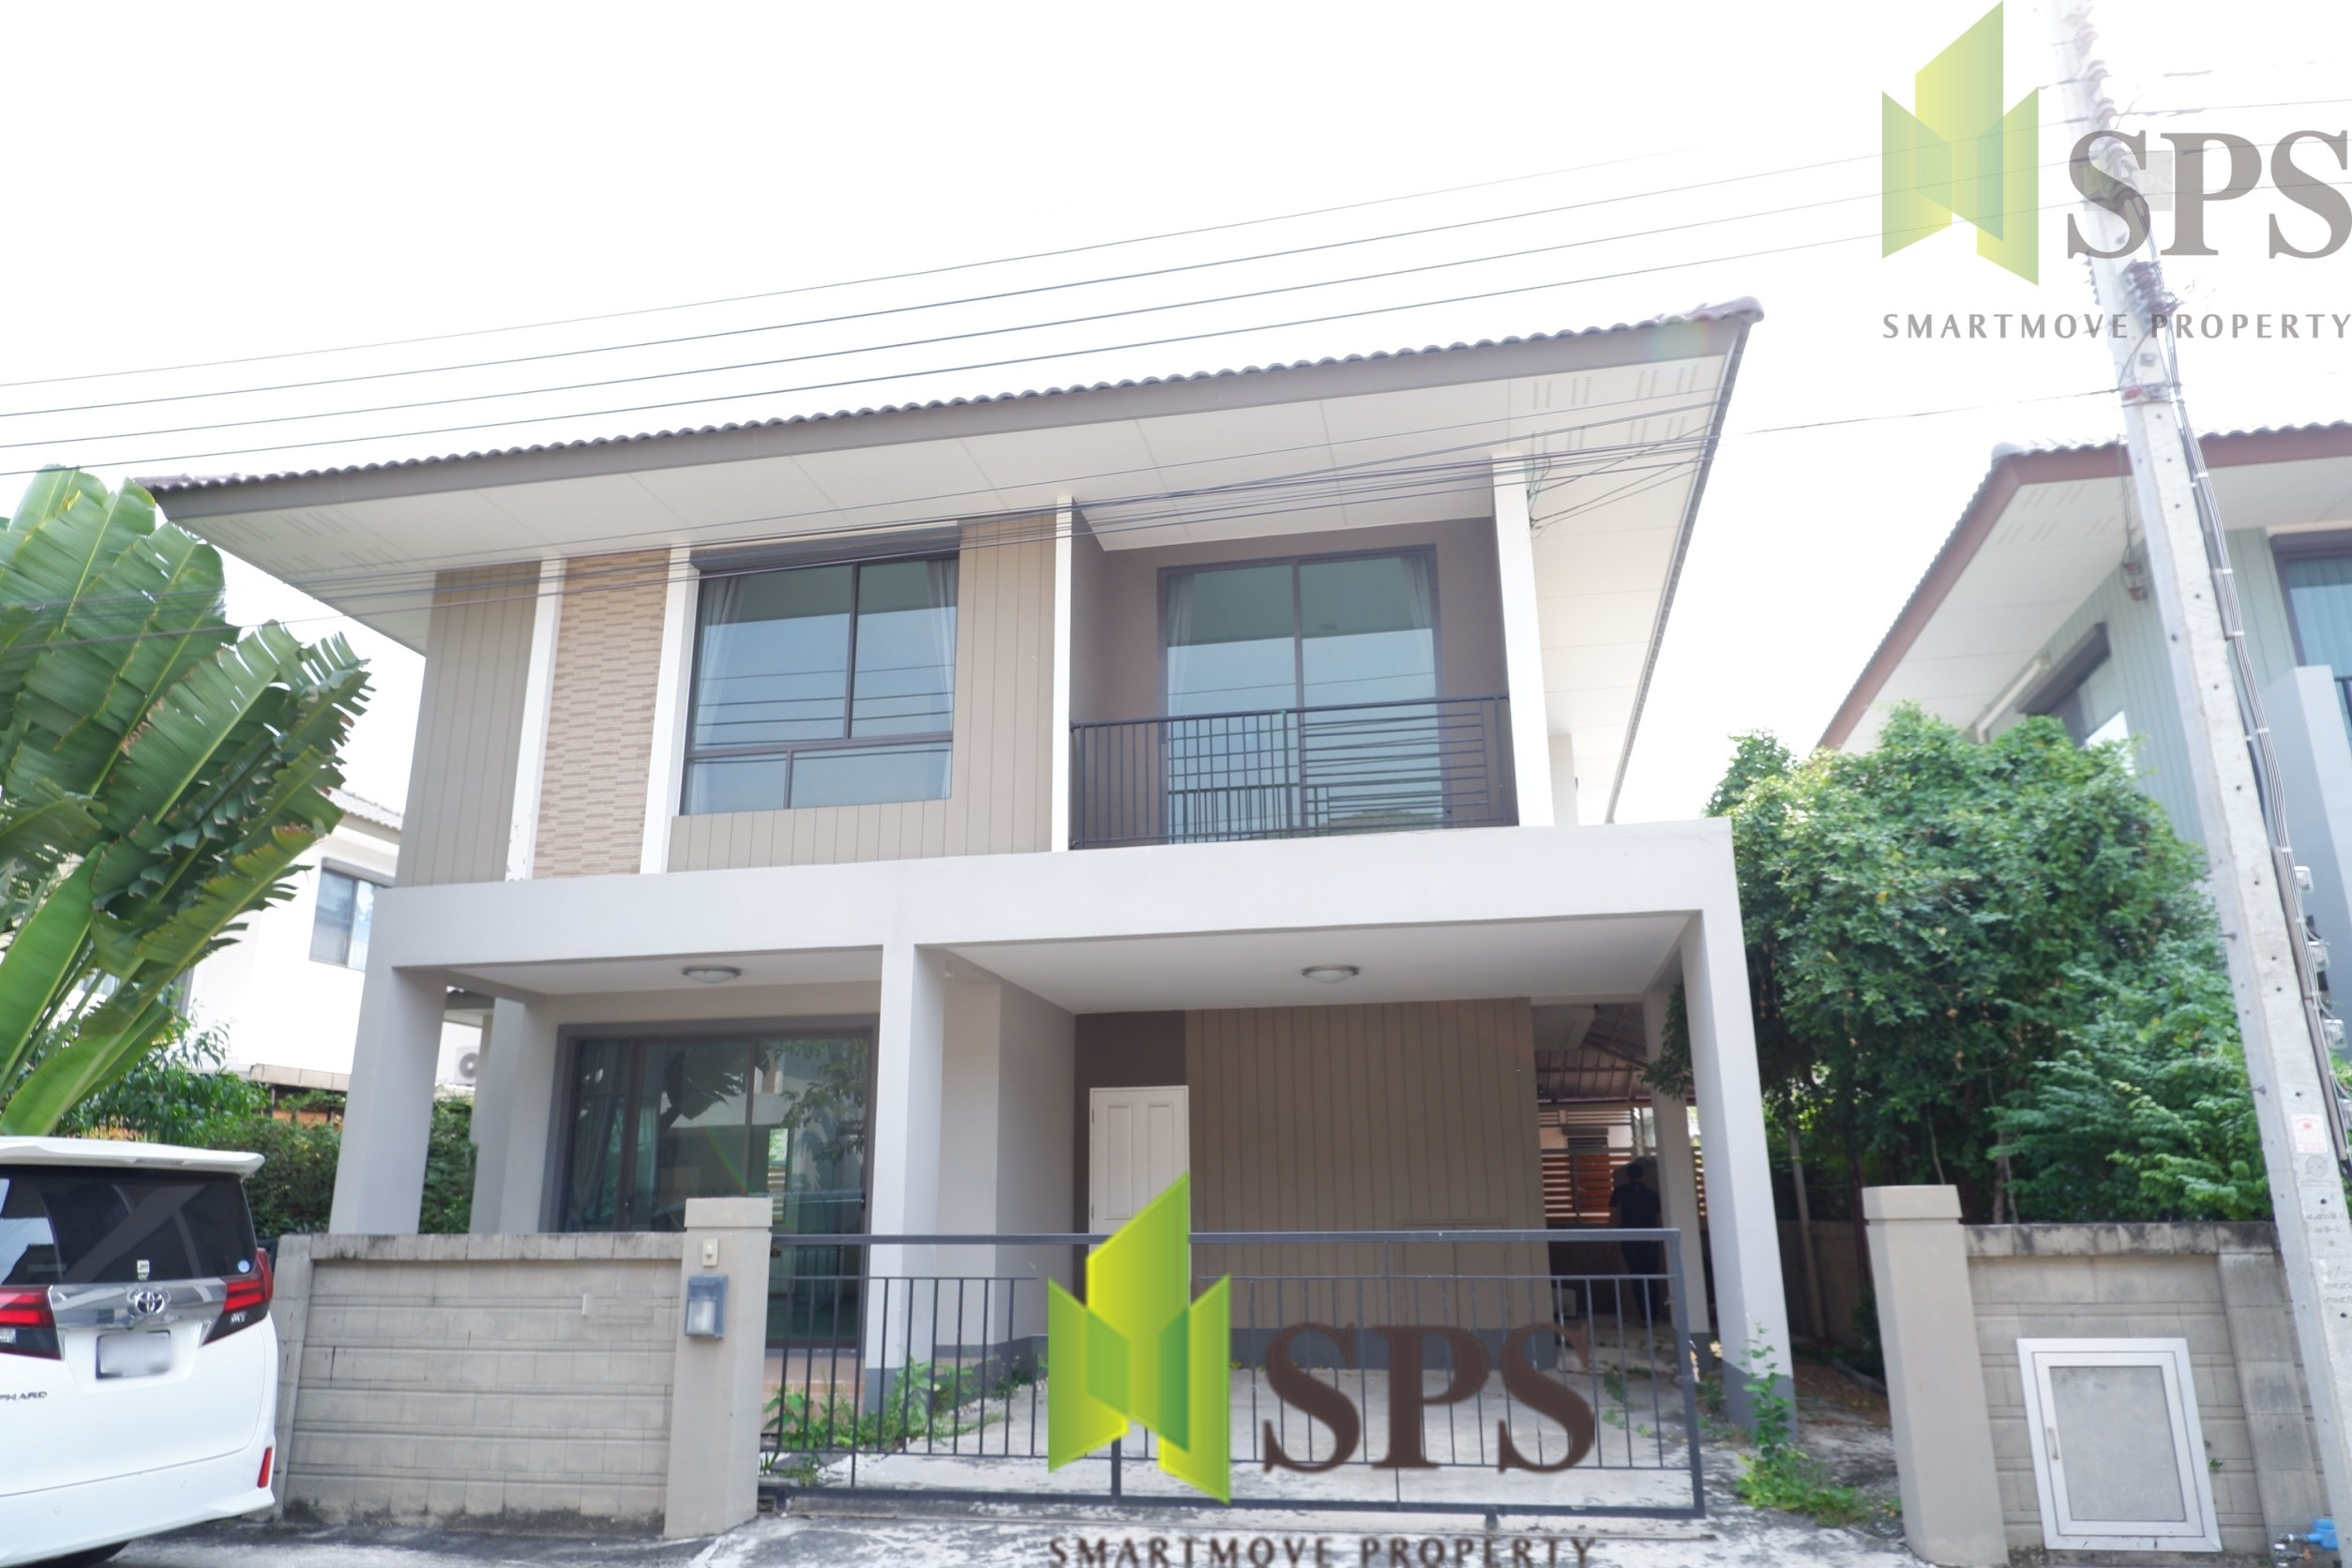 For Rent Single House 3 bedrooms Bangna-Kingkaew Road(SPS-GH9)